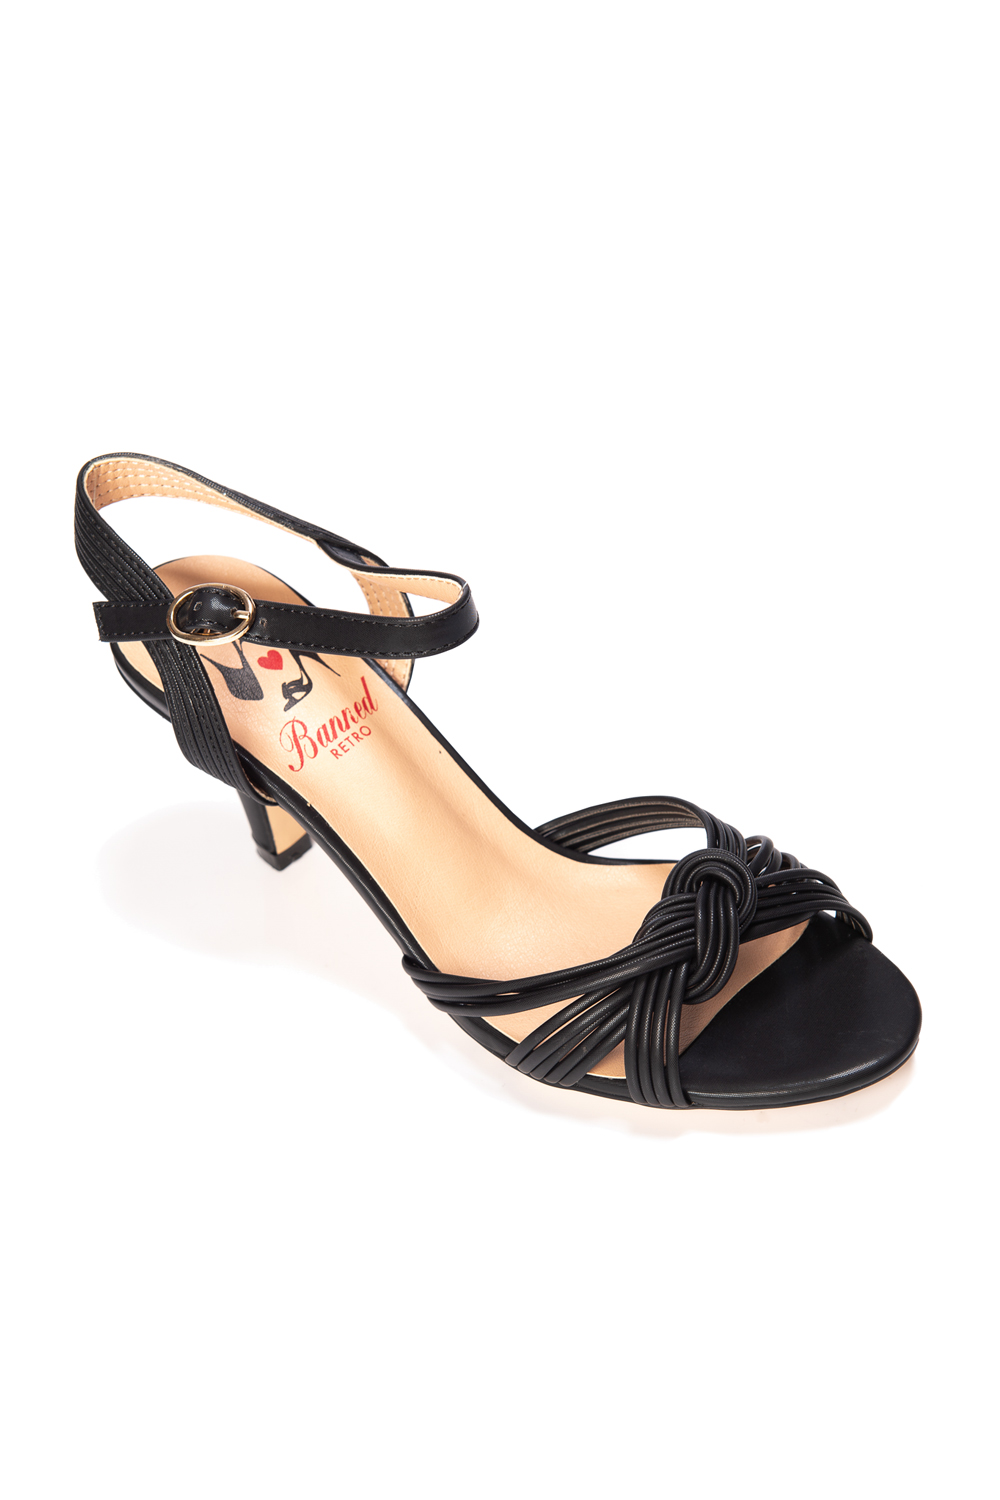 Banned Retro Aneko 40s Black Twist Bow Sandals